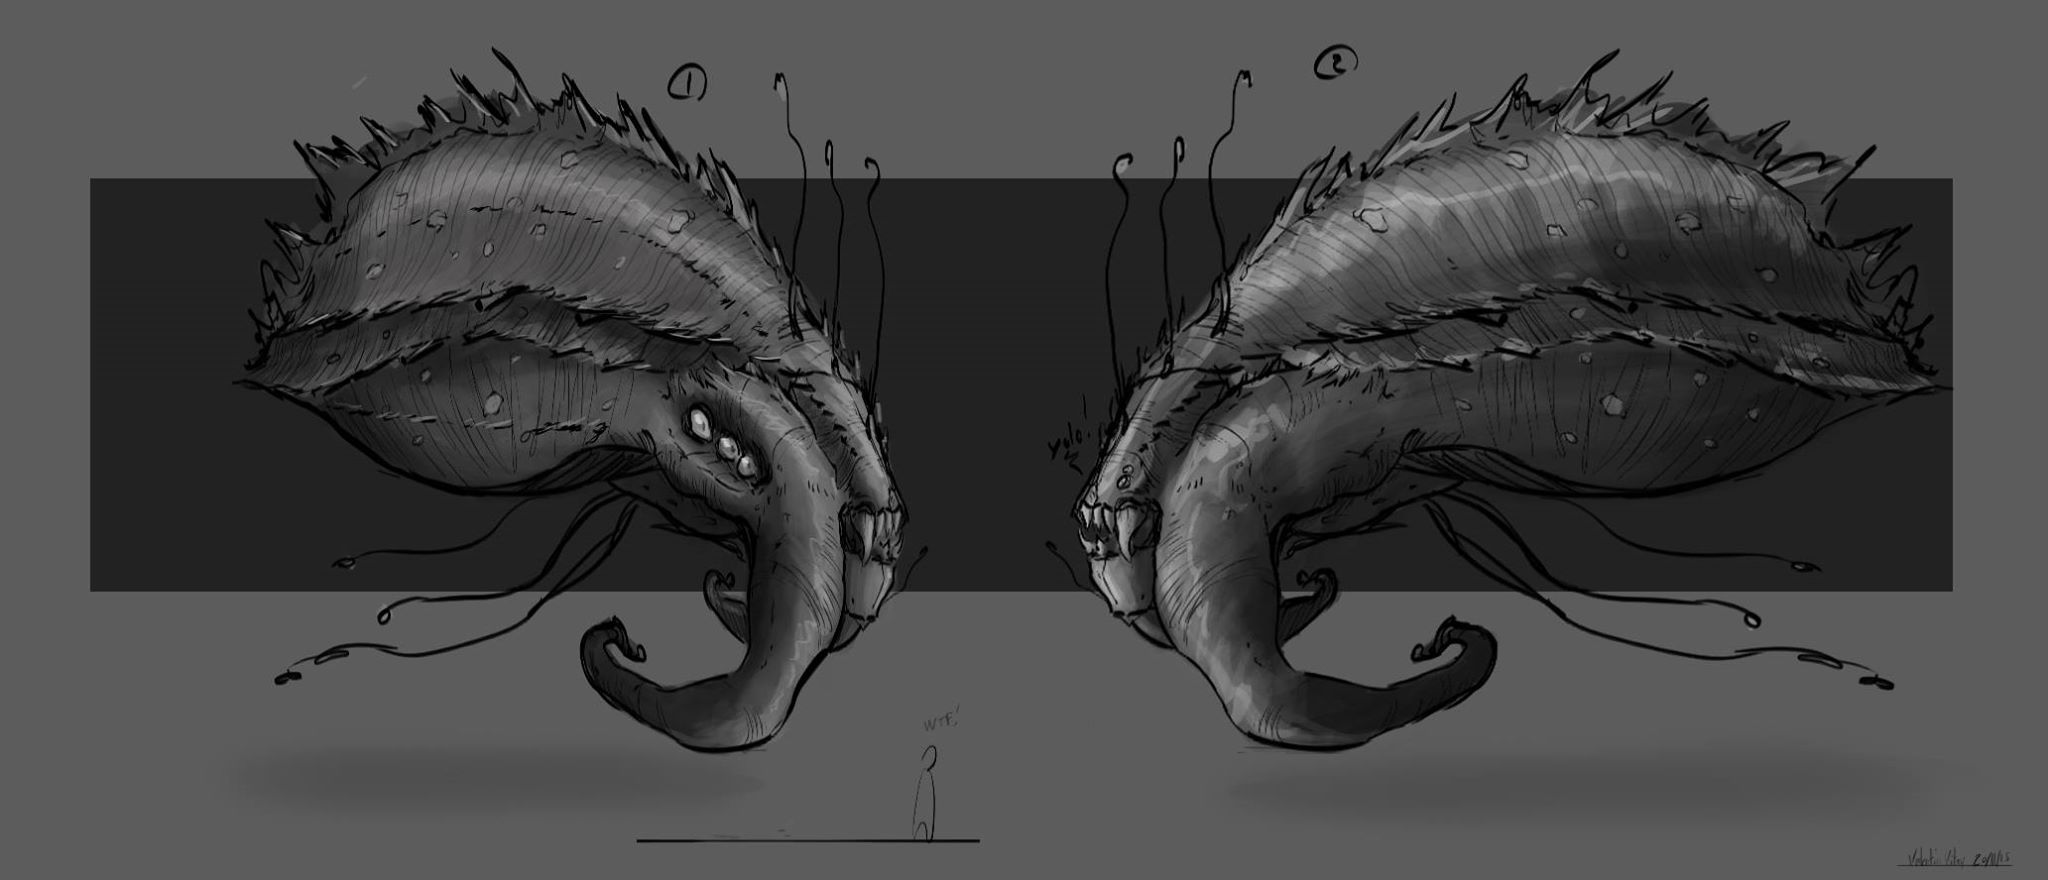 Sea monsters concept art by valentinvitry on DeviantArt